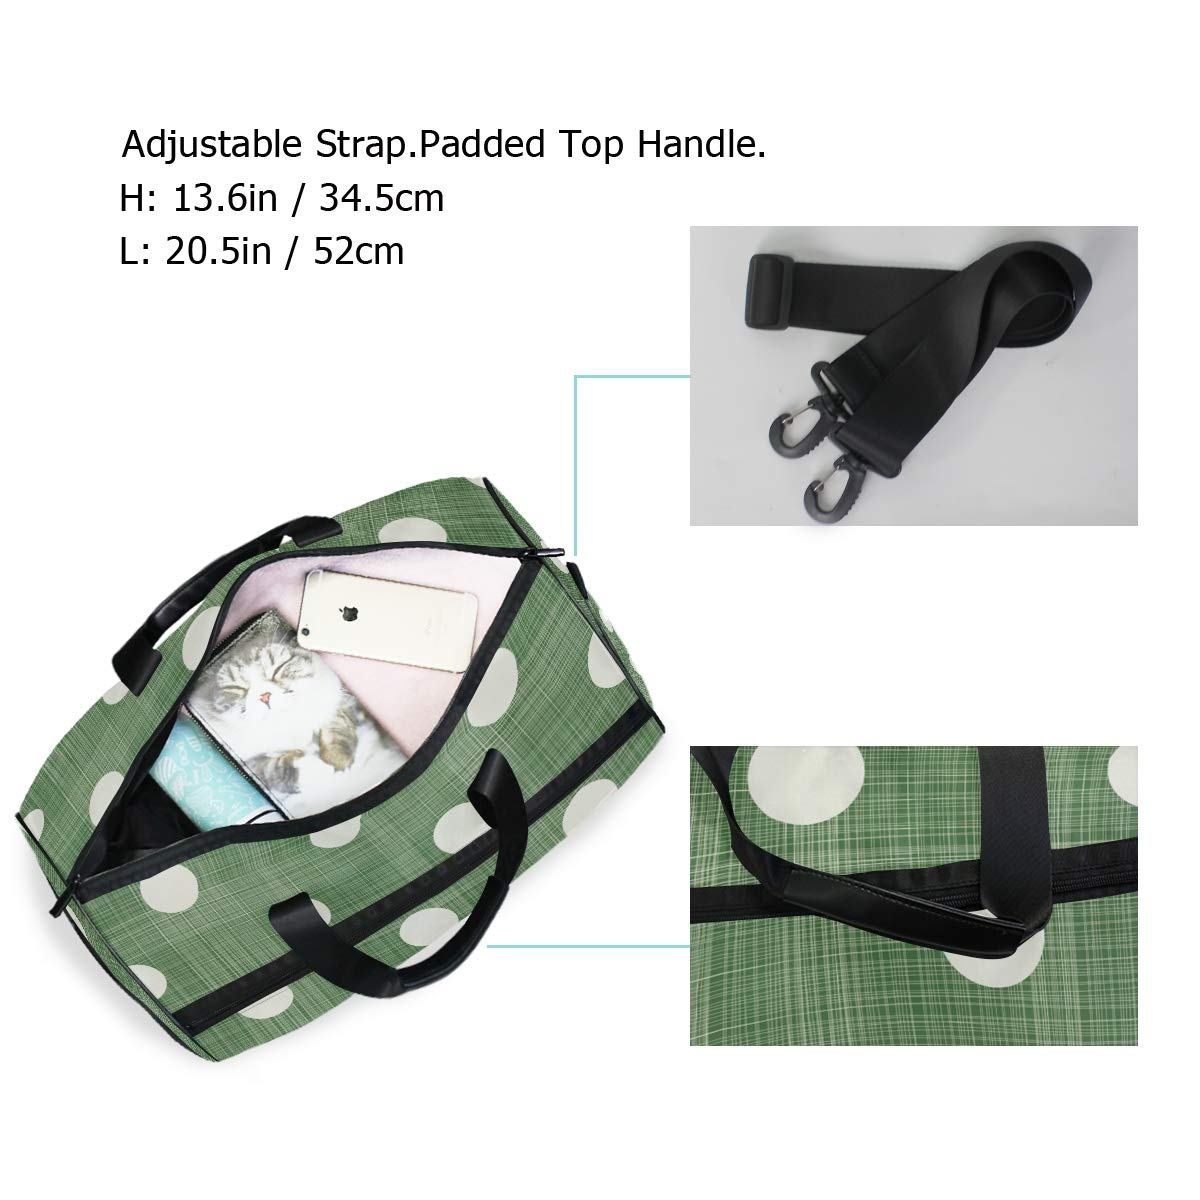 Gym Travel Duffel Bag Polka Dot Green Waterproof Lightweight Luggage bag for Sports Vacation